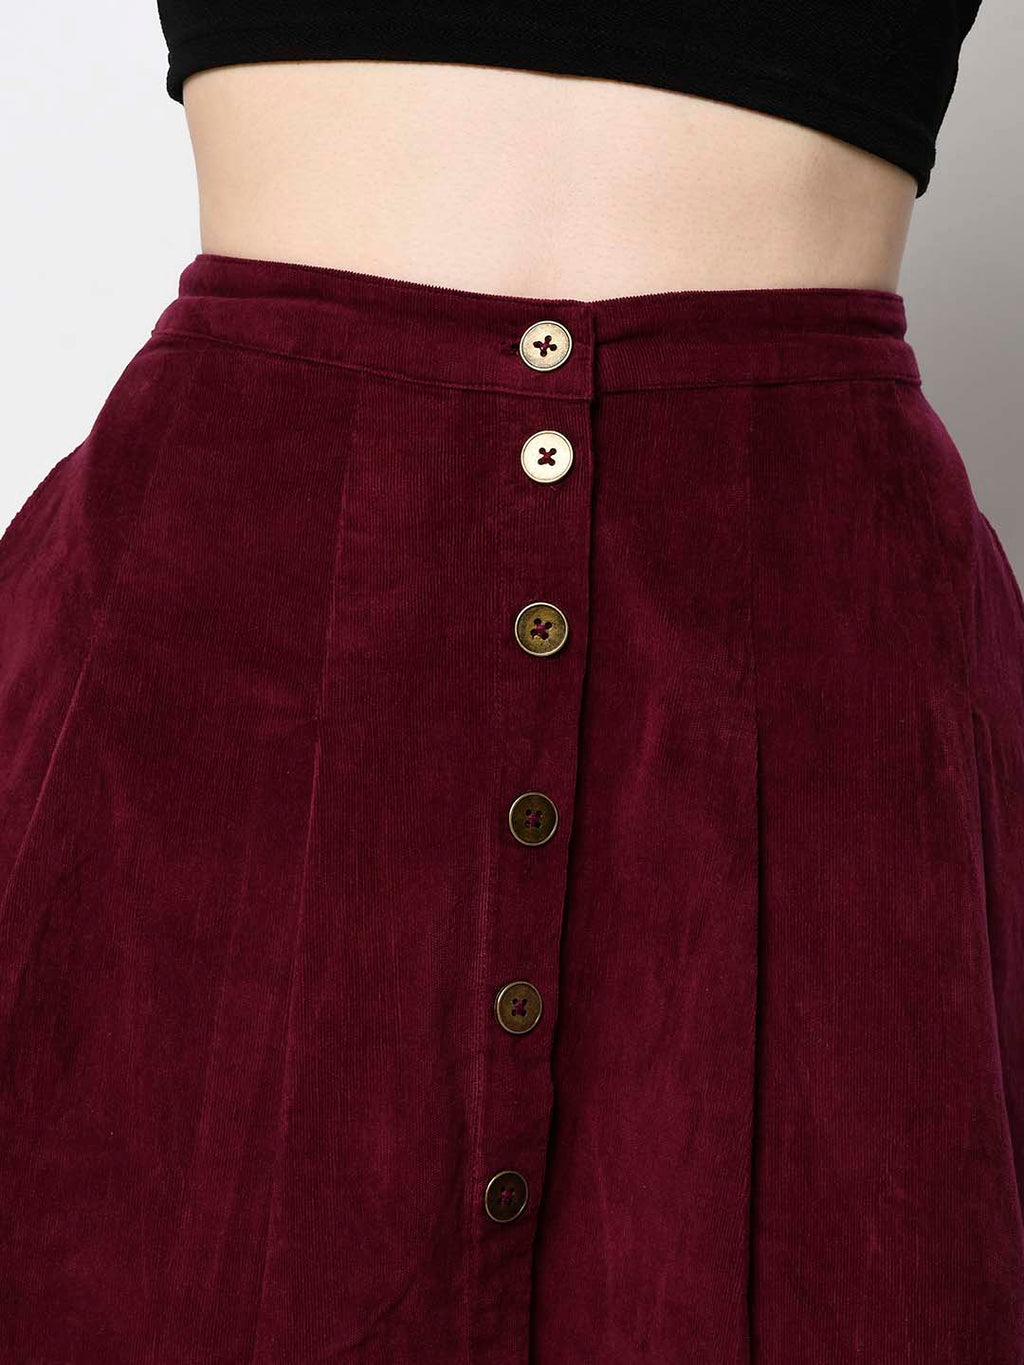 Pleated Maroon Skirt